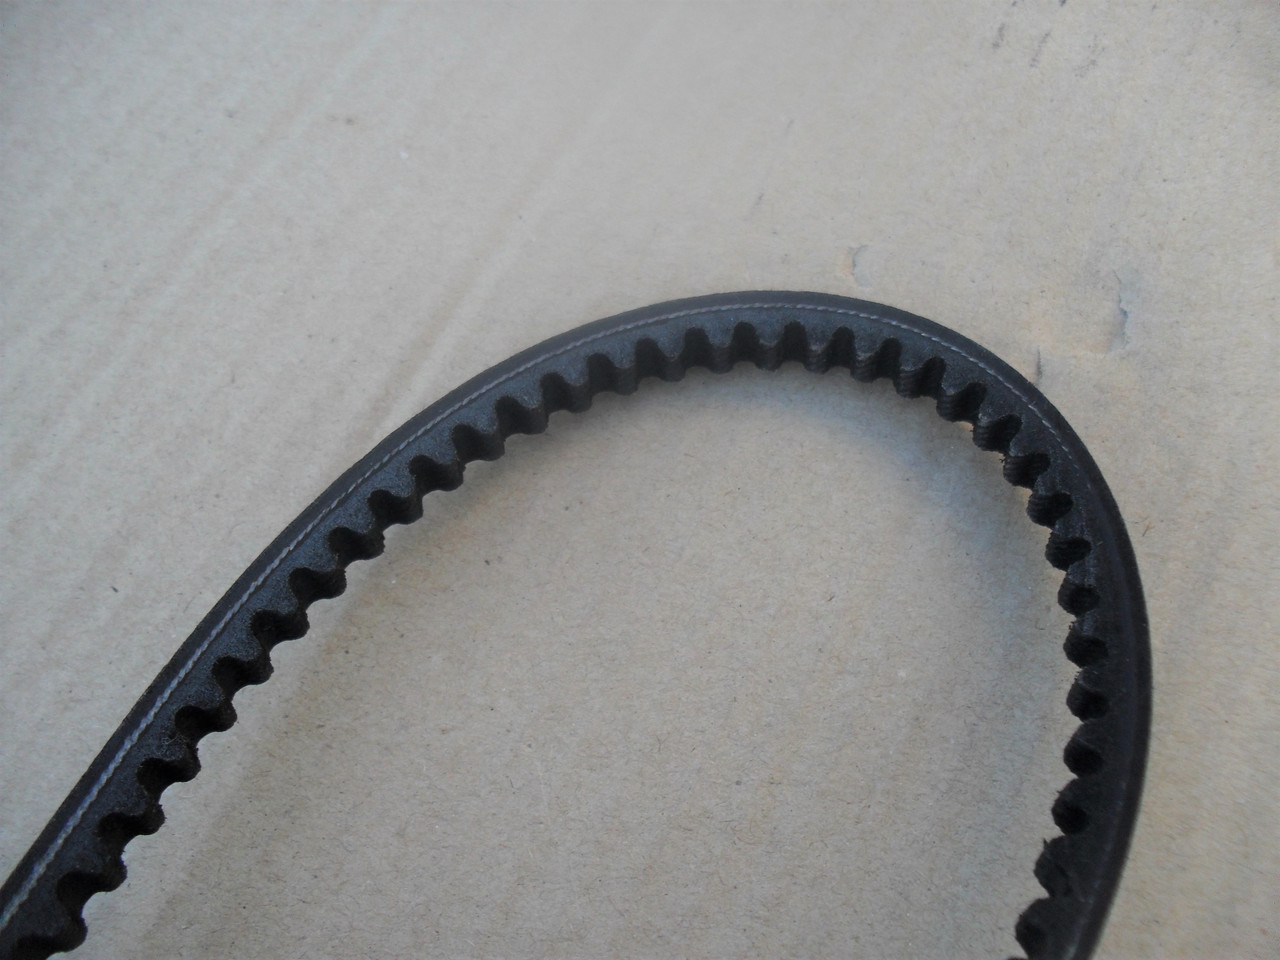 Wheel Drive Belt for Toro 724, 726, 826, 1203893, 120-3893 Snowblower, Made In USA, snowthrower, snow blower thrower